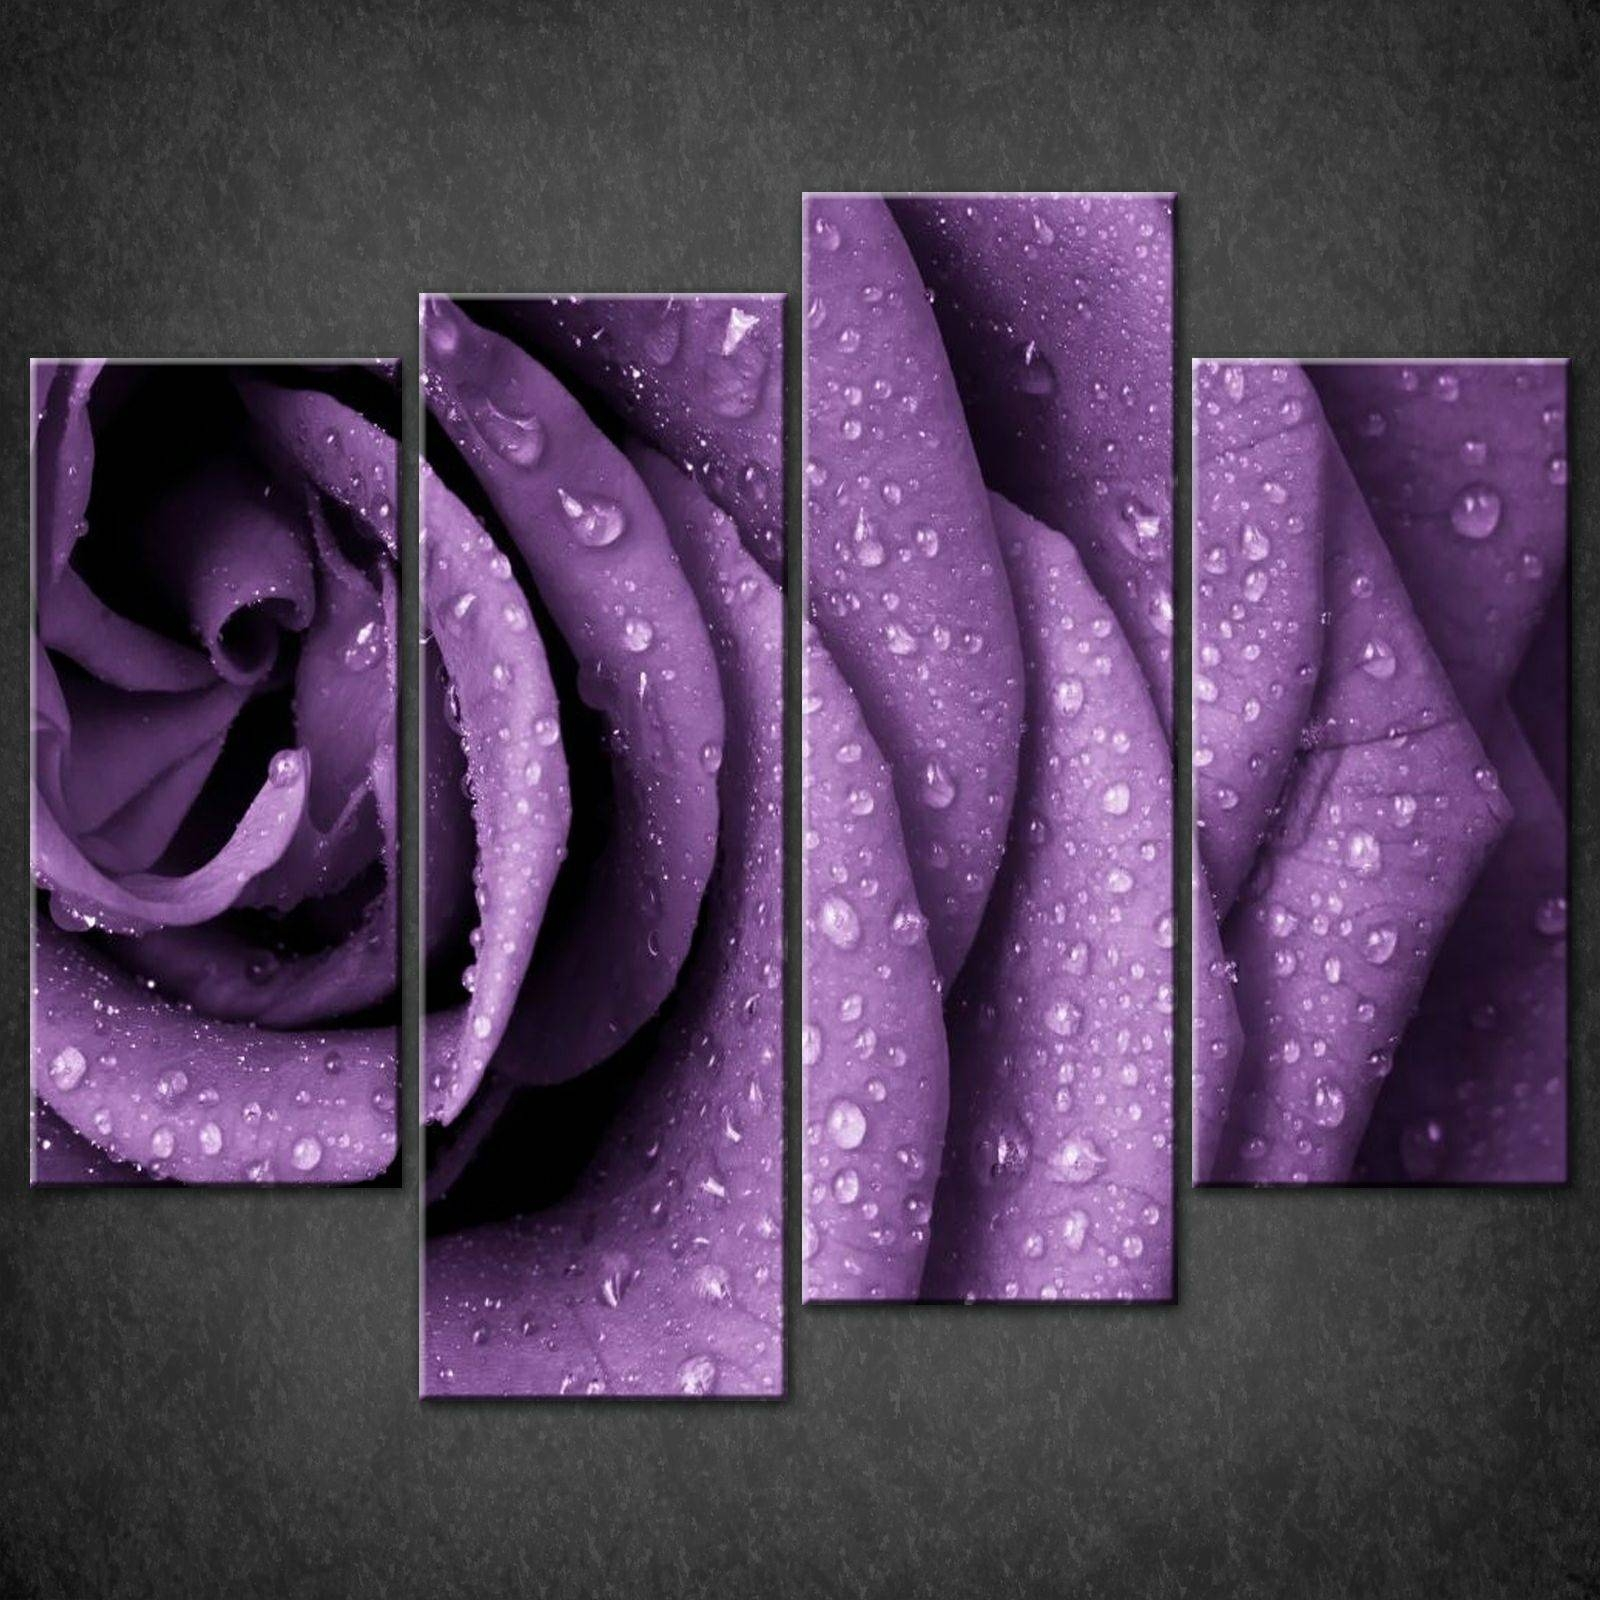 Wall Art Designs: Top Purple Canvas Wall Art Uk Wall Decor Purple Inside Recent Purple Canvas Wall Art (View 19 of 20)